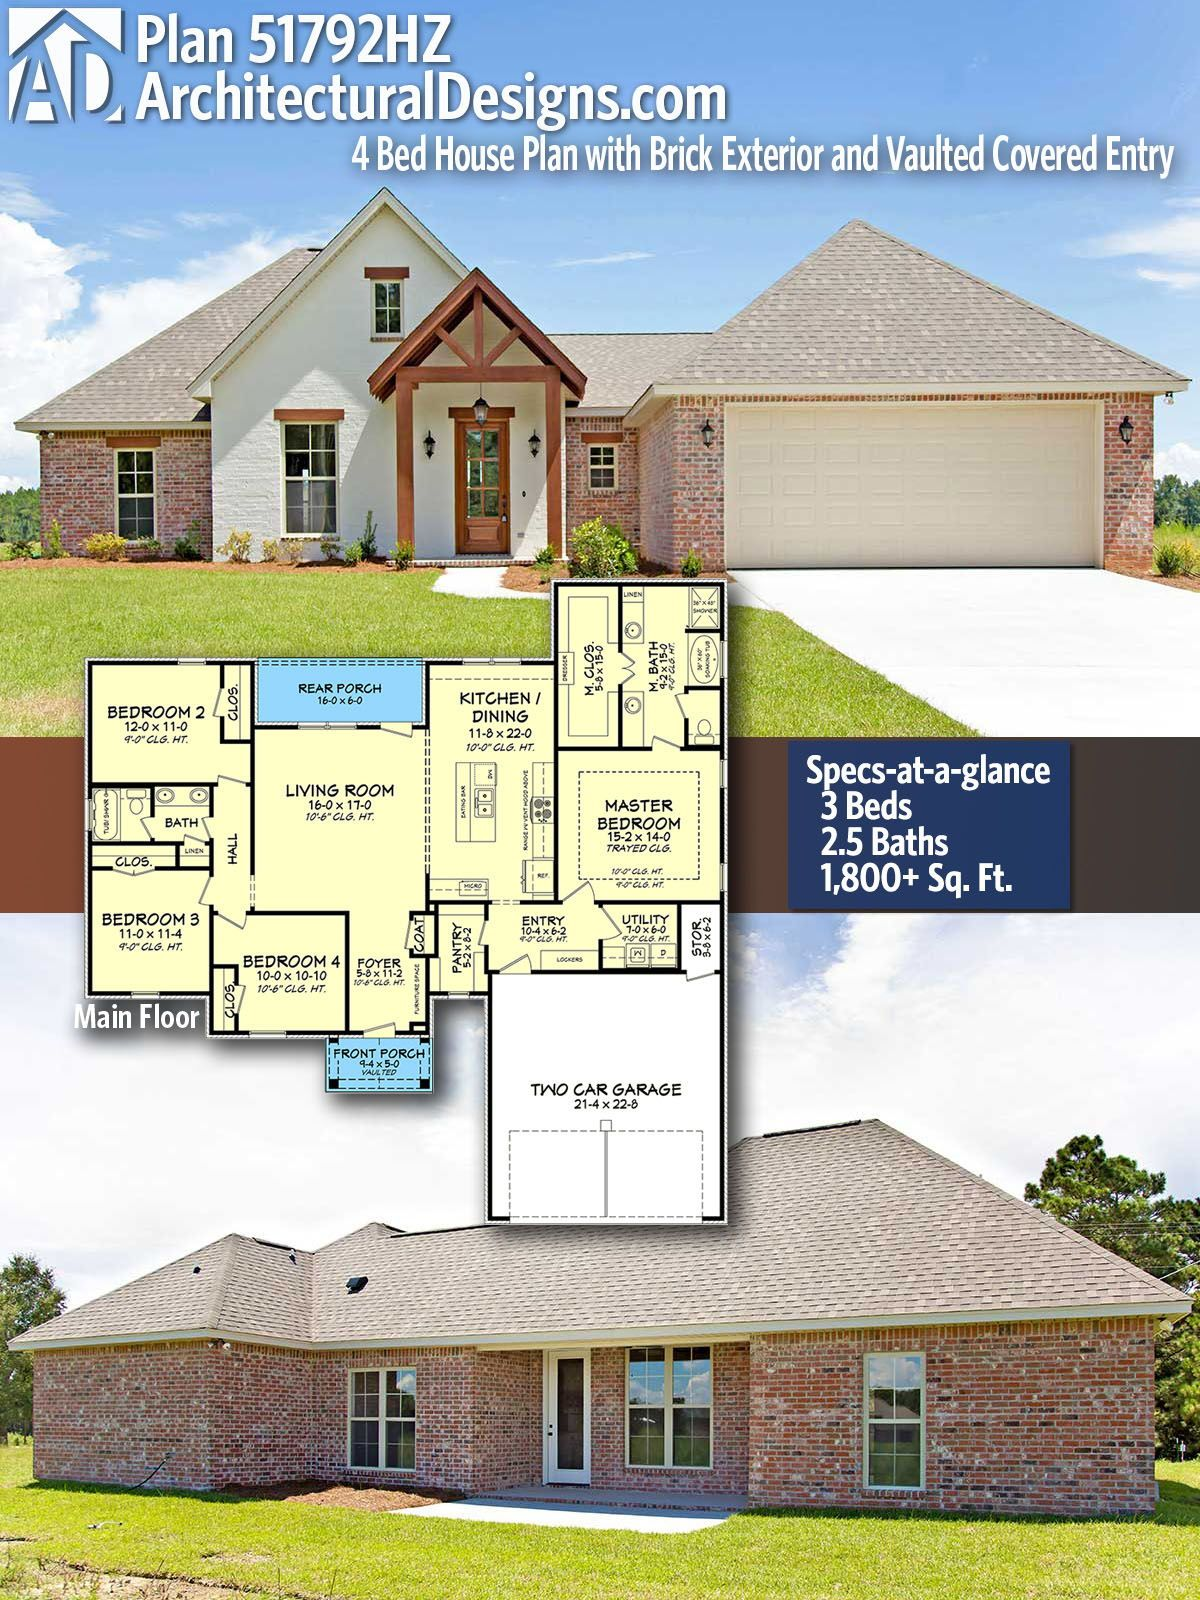 Plan 51792hz 4 Bed House Plan With Brick Exterior And Vaulted Covered Entry Craftsman House Plans House Plans Acadian House Plans